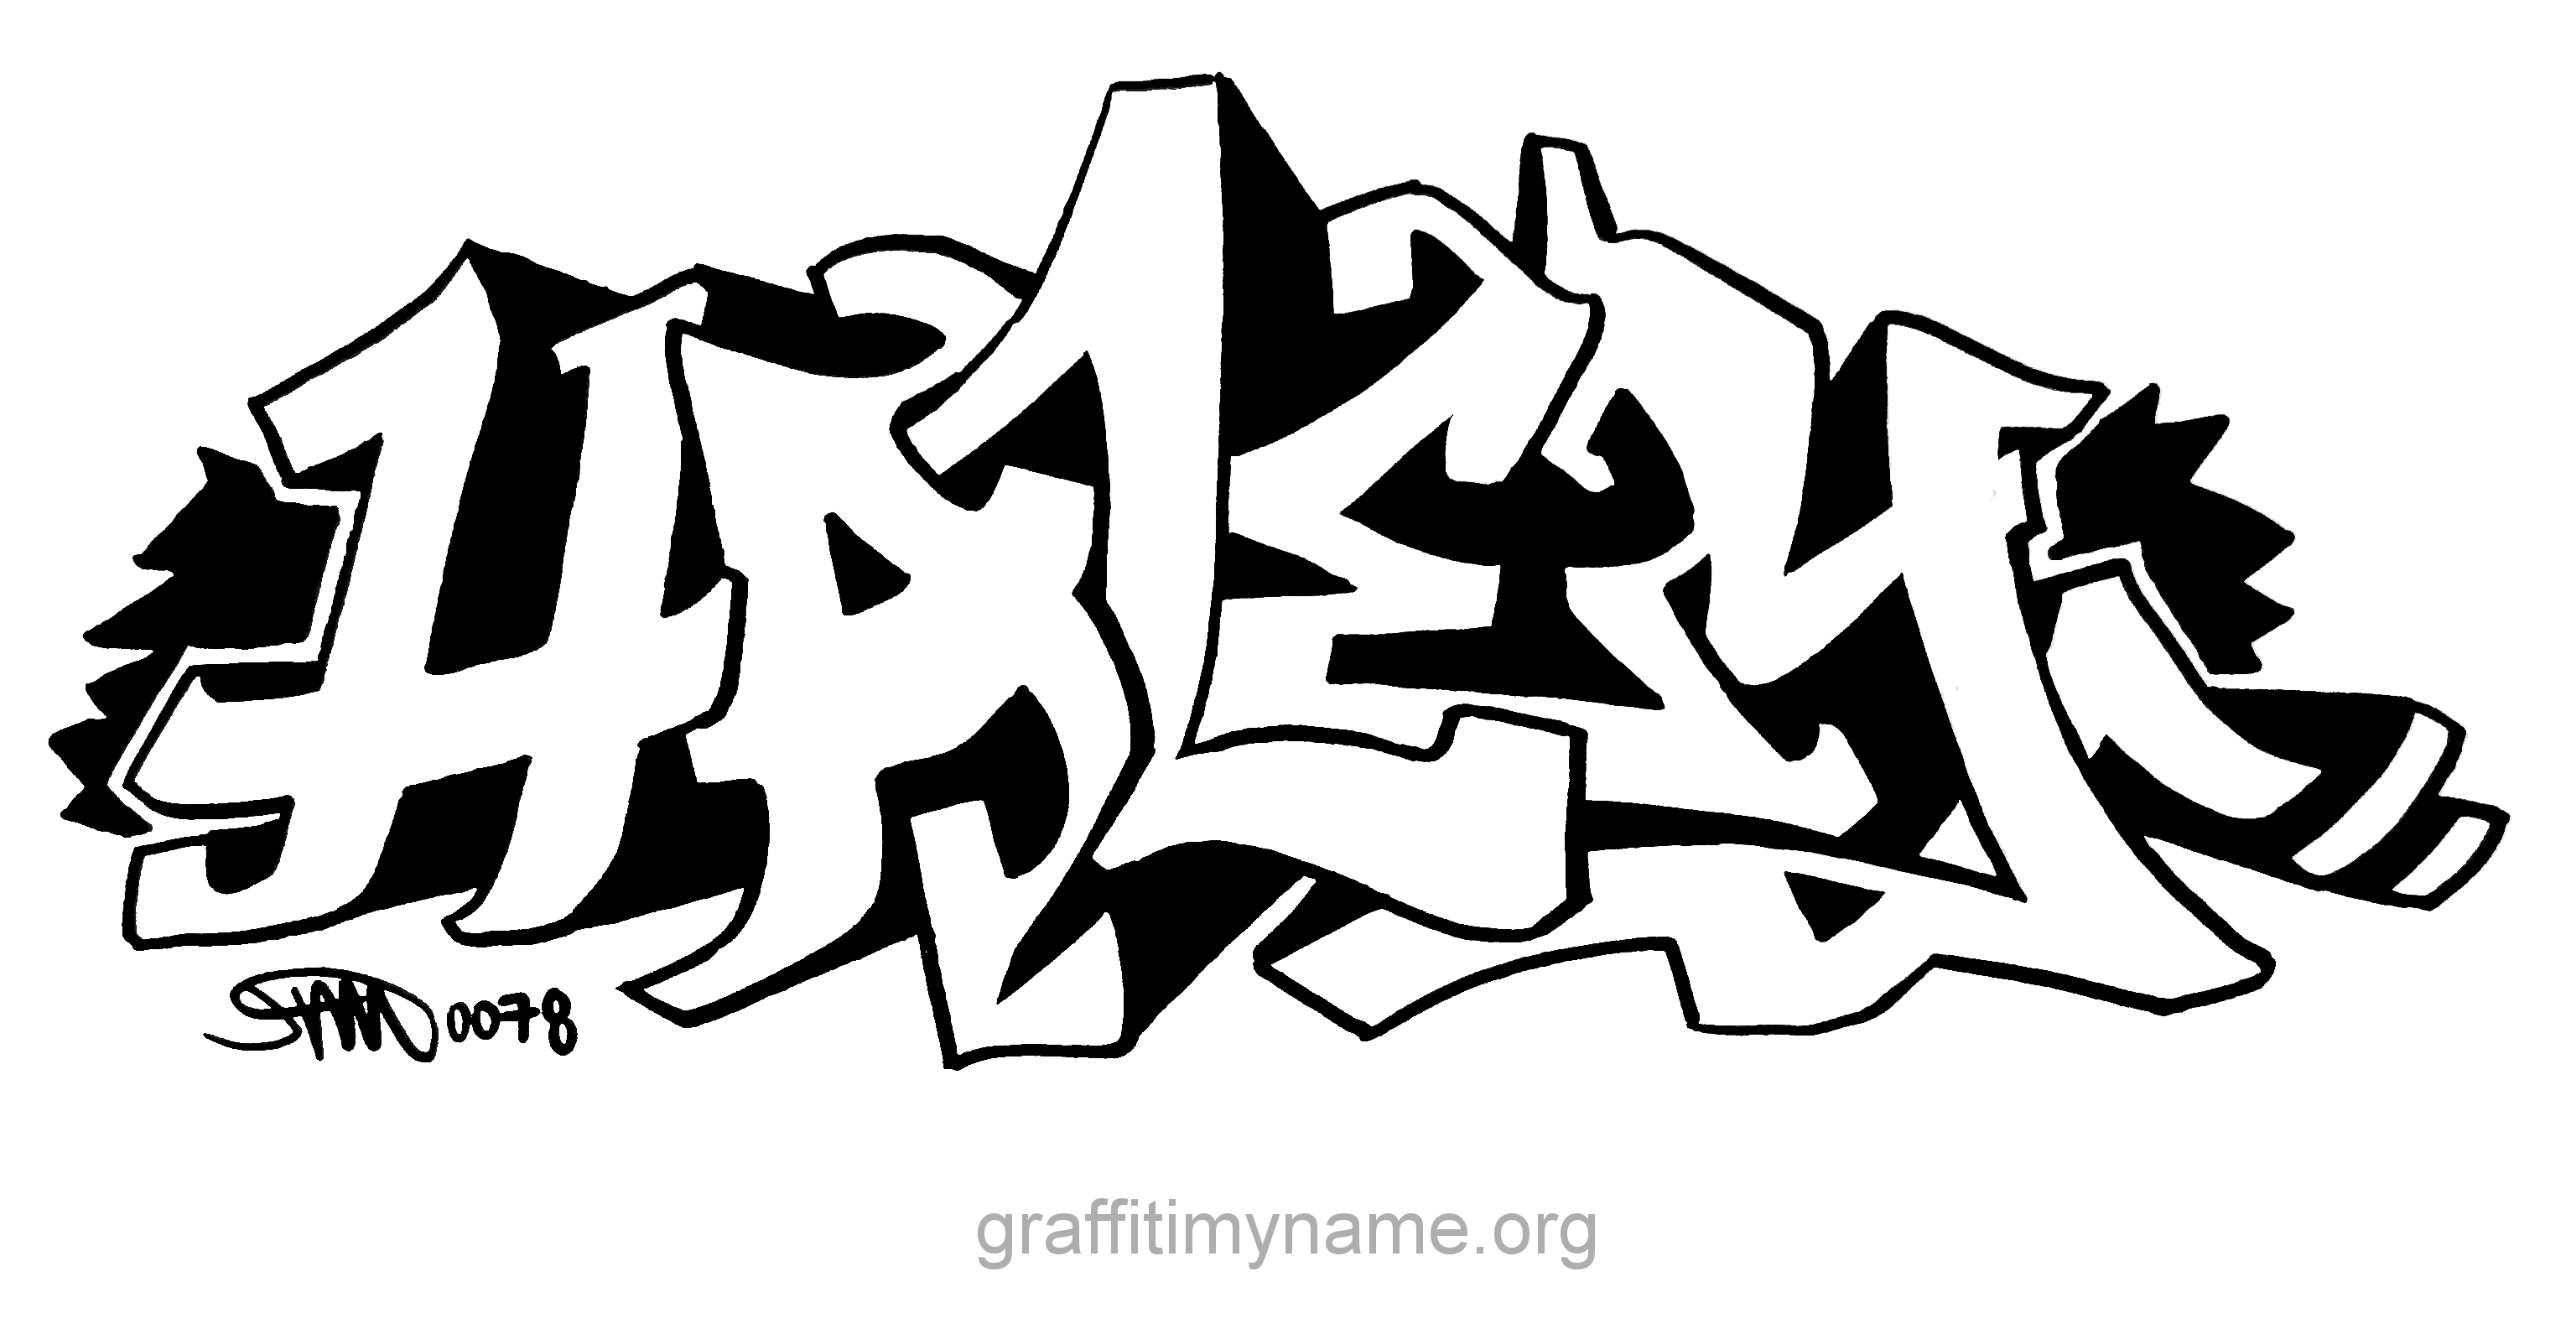 The Name Katherine In Graffiti